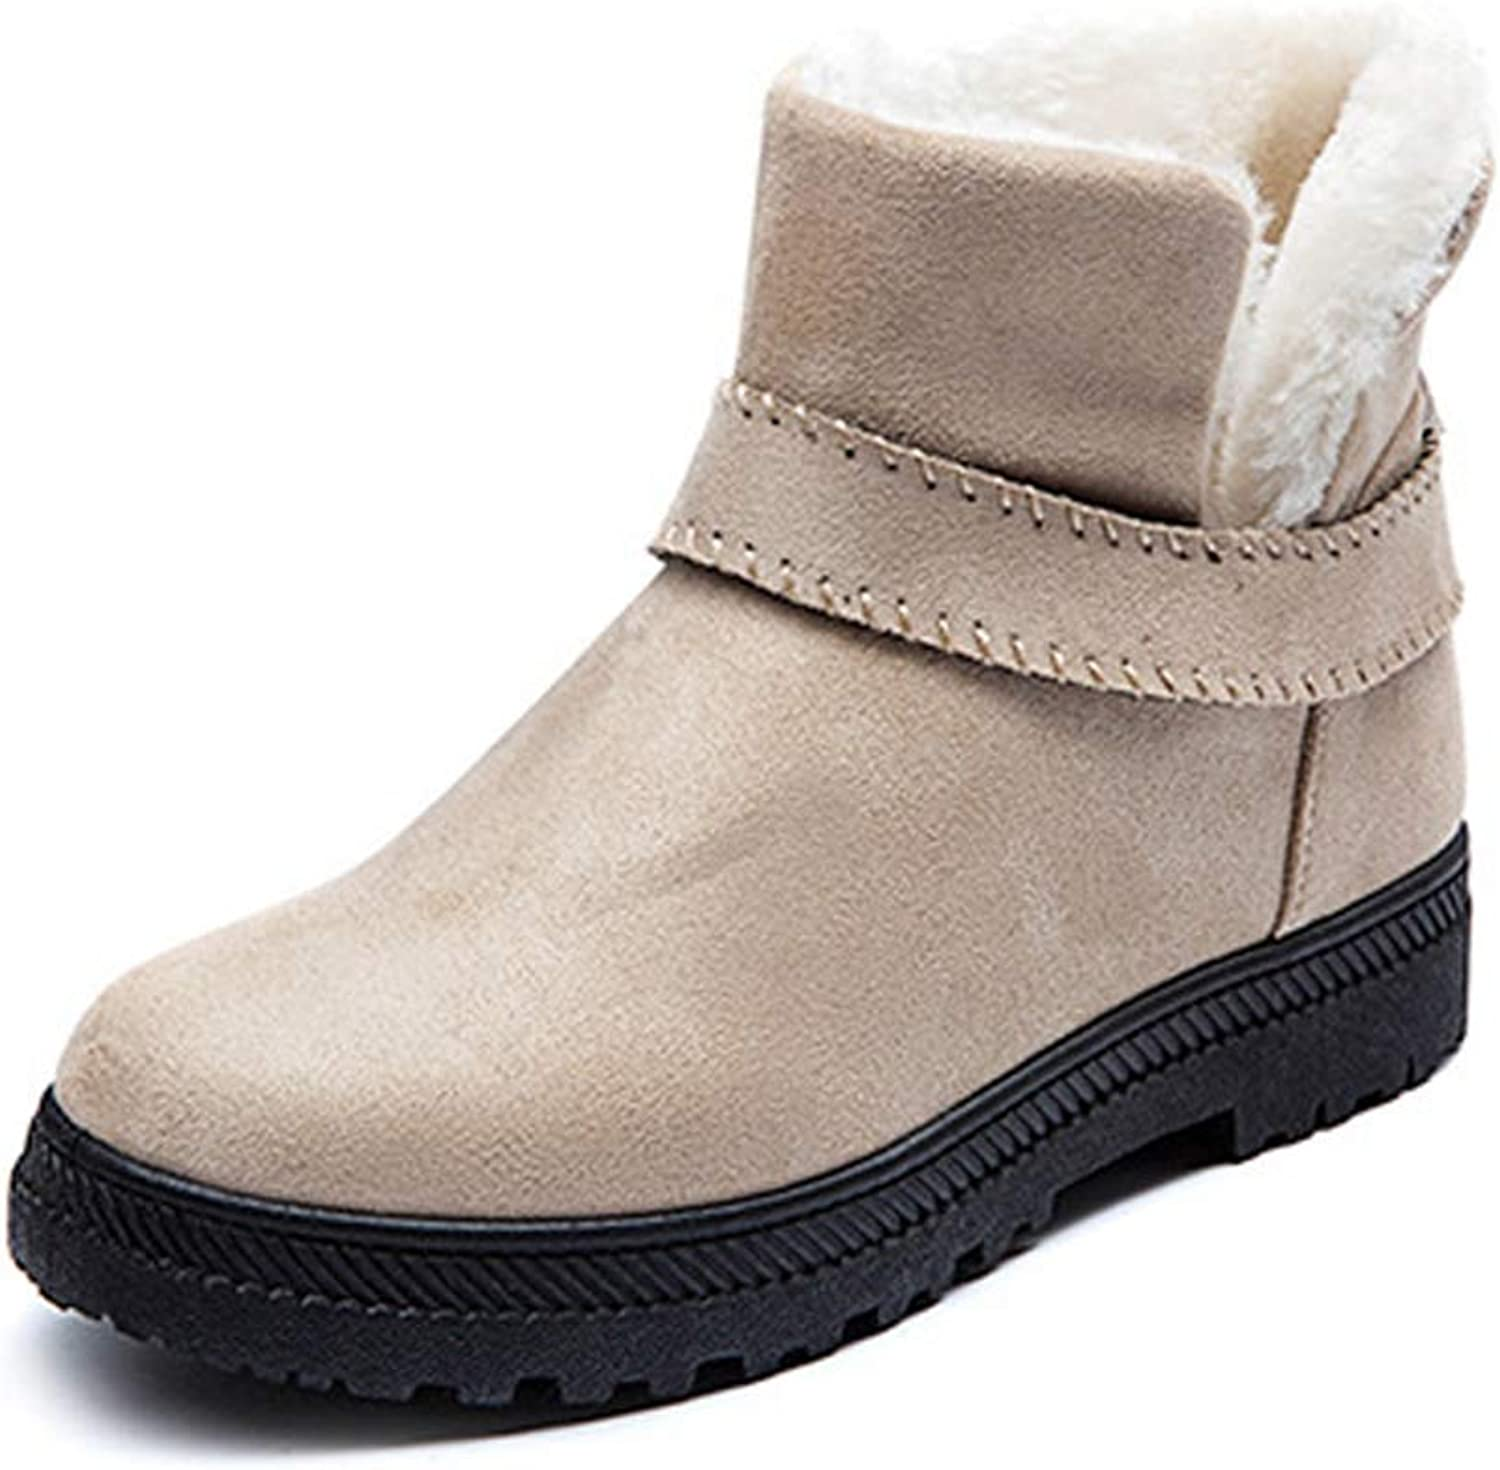 Women Ankle Boots Warm Winter shoes Women Snow Boots Buckle Round Toe Flat with Short Boots